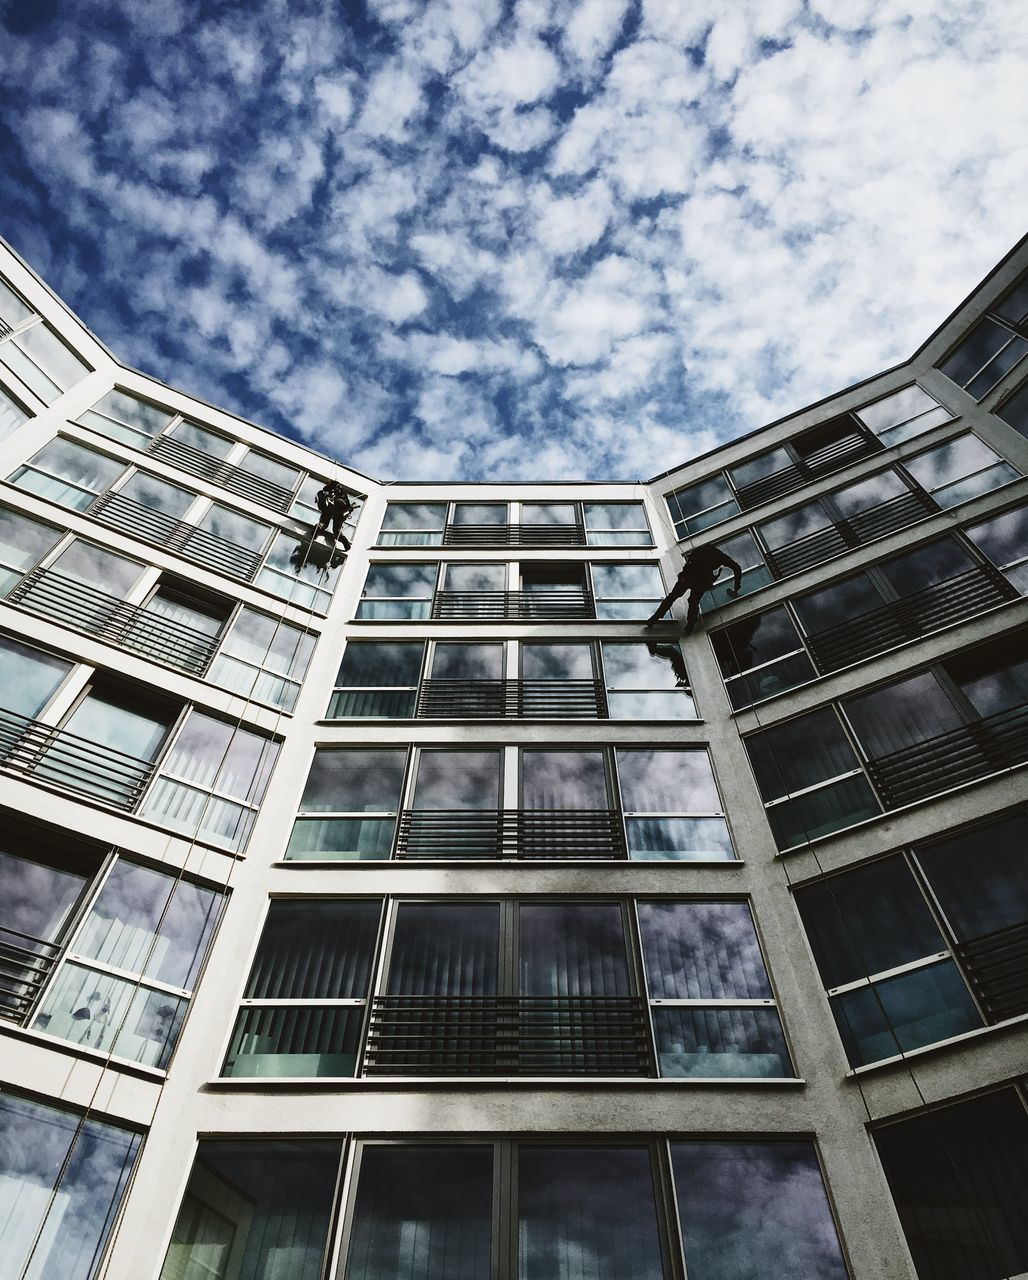 architecture, window, building exterior, low angle view, modern, sky, no people, outdoors, city, day